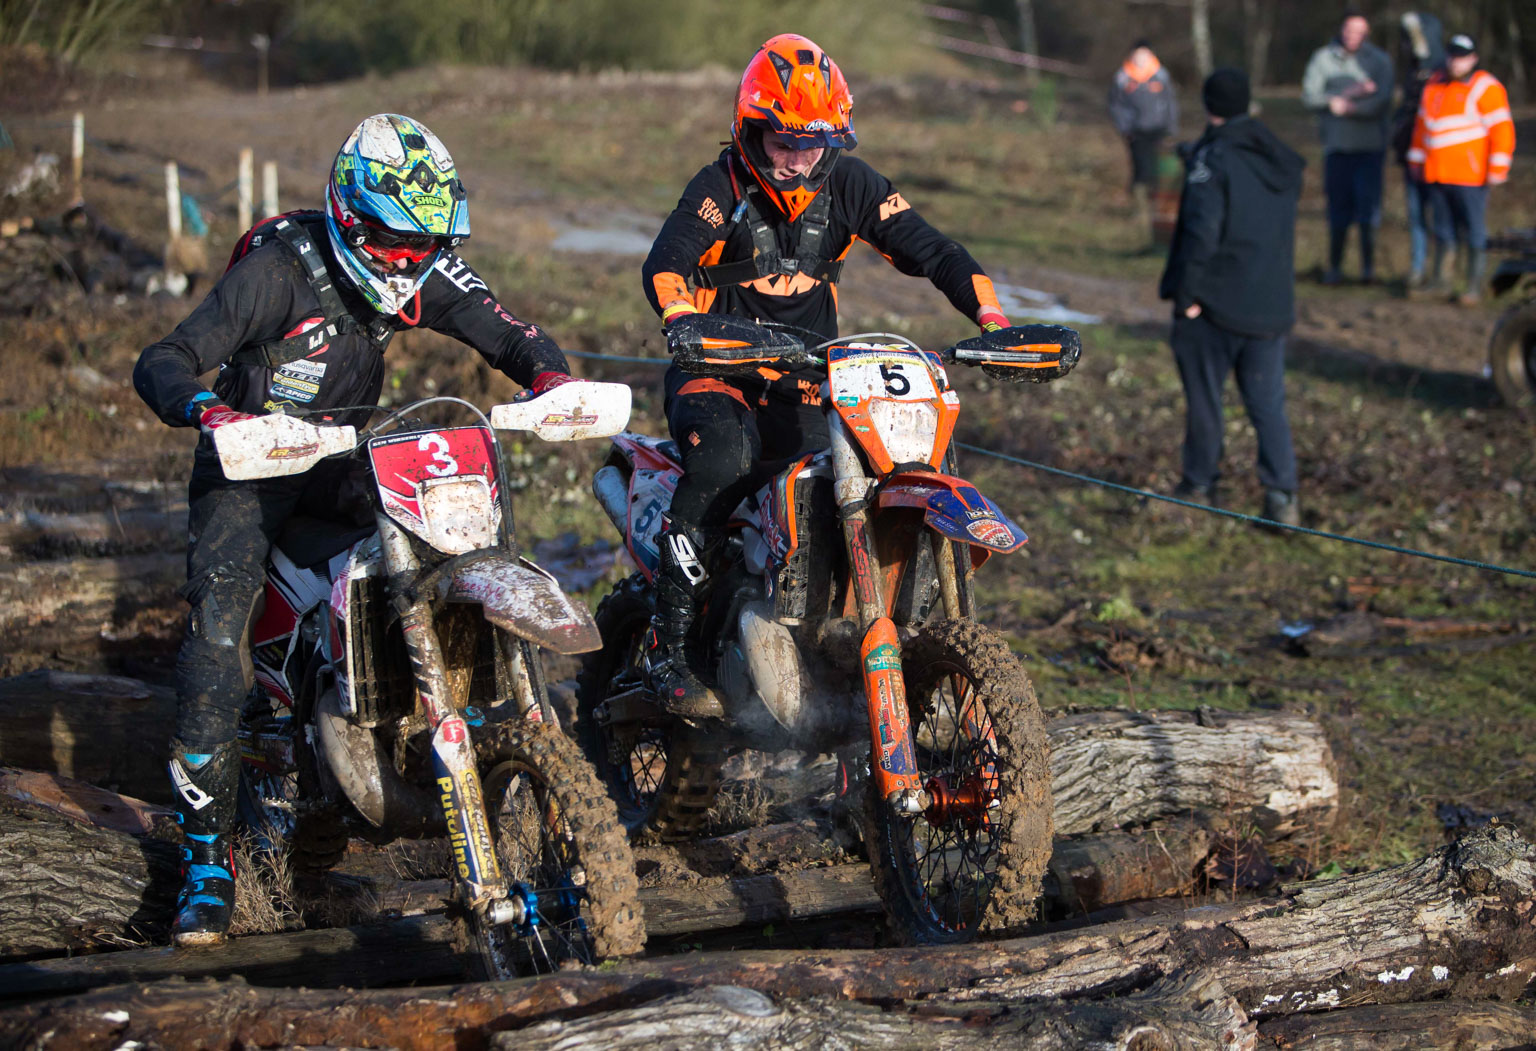 Ben Wibberley and No.5 Charlie Frost stay cleanish on the opening lap